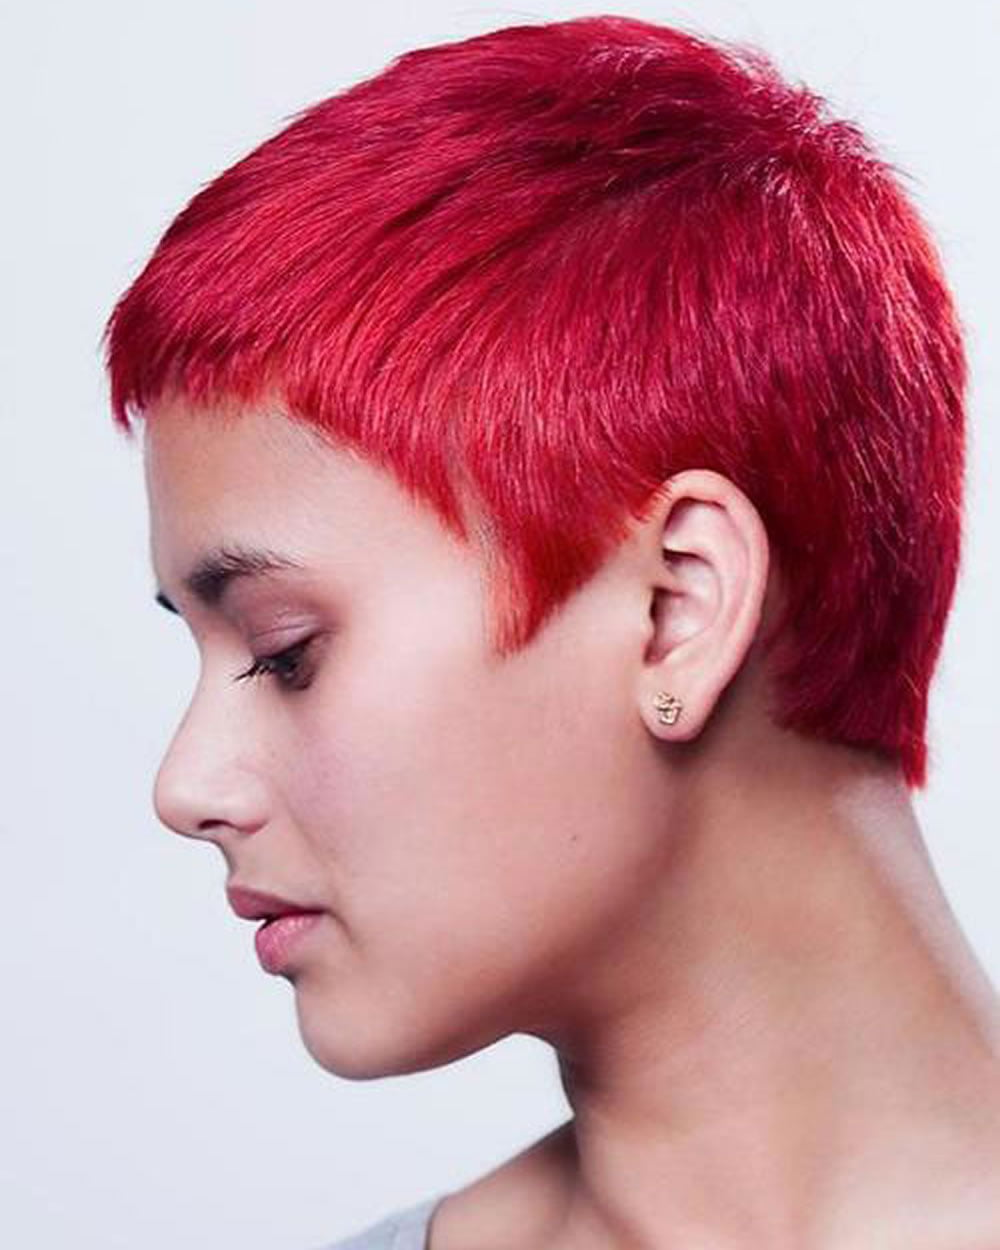 21 Trendy Short Haircut Images And Pixie Hairstyles Youll